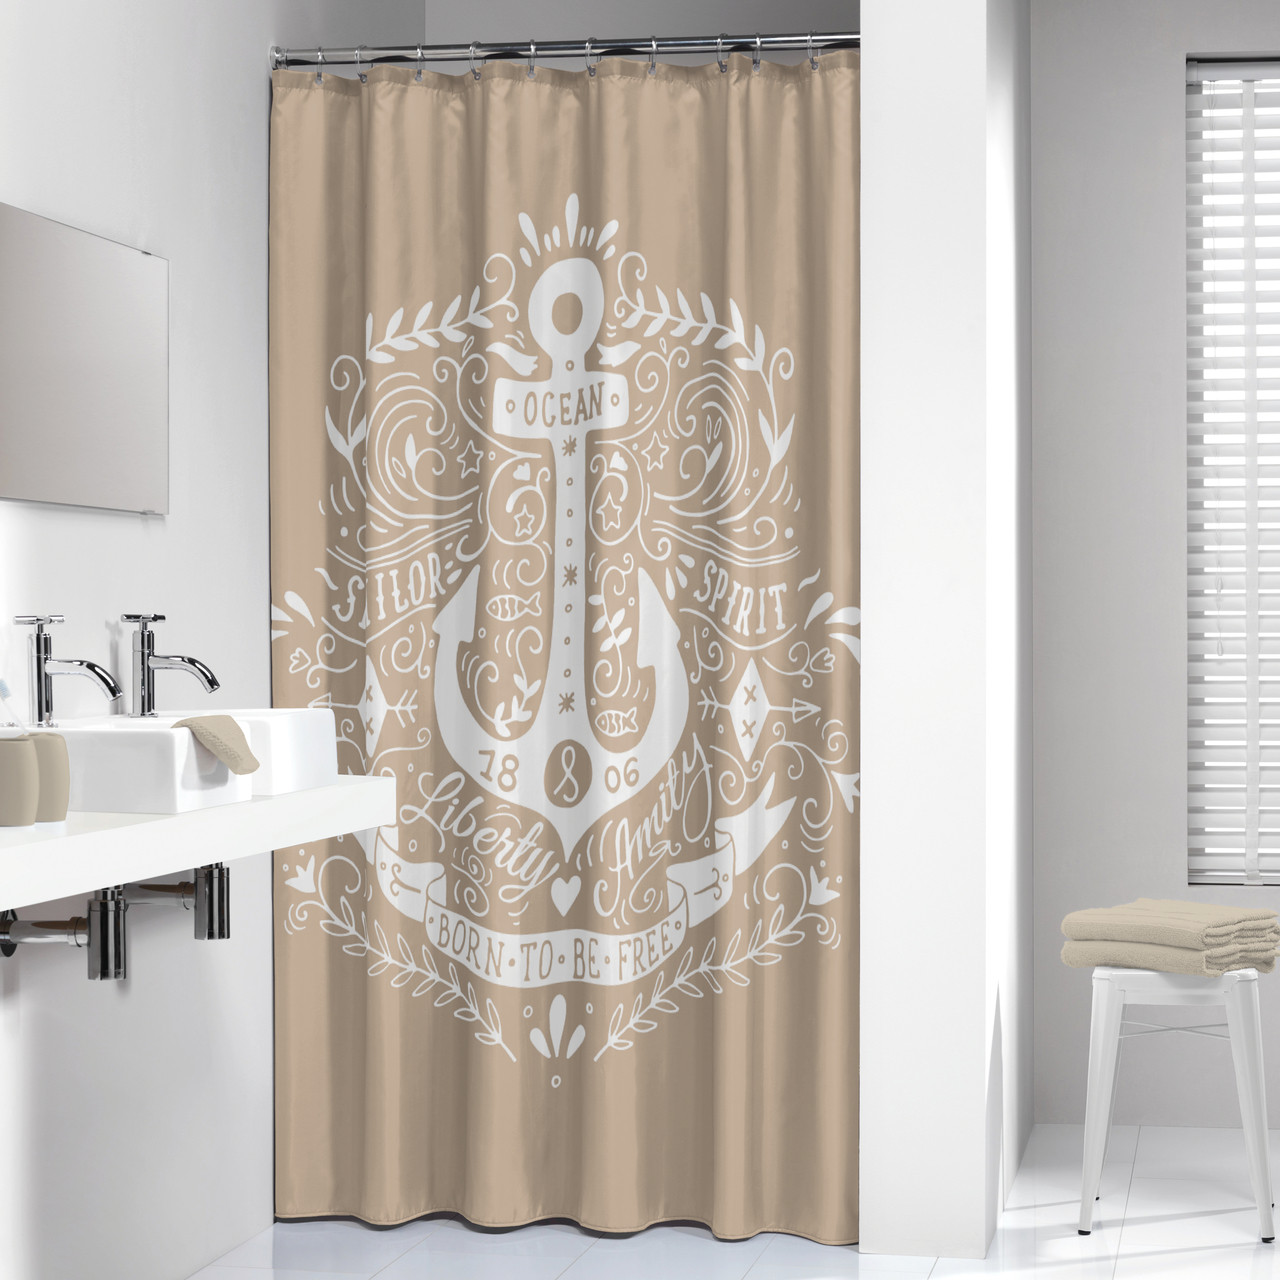 Long Shower Curtain Extra Long Shower Curtain 72 X 78 Inch Sealskin Anchor Beige And White Fabric